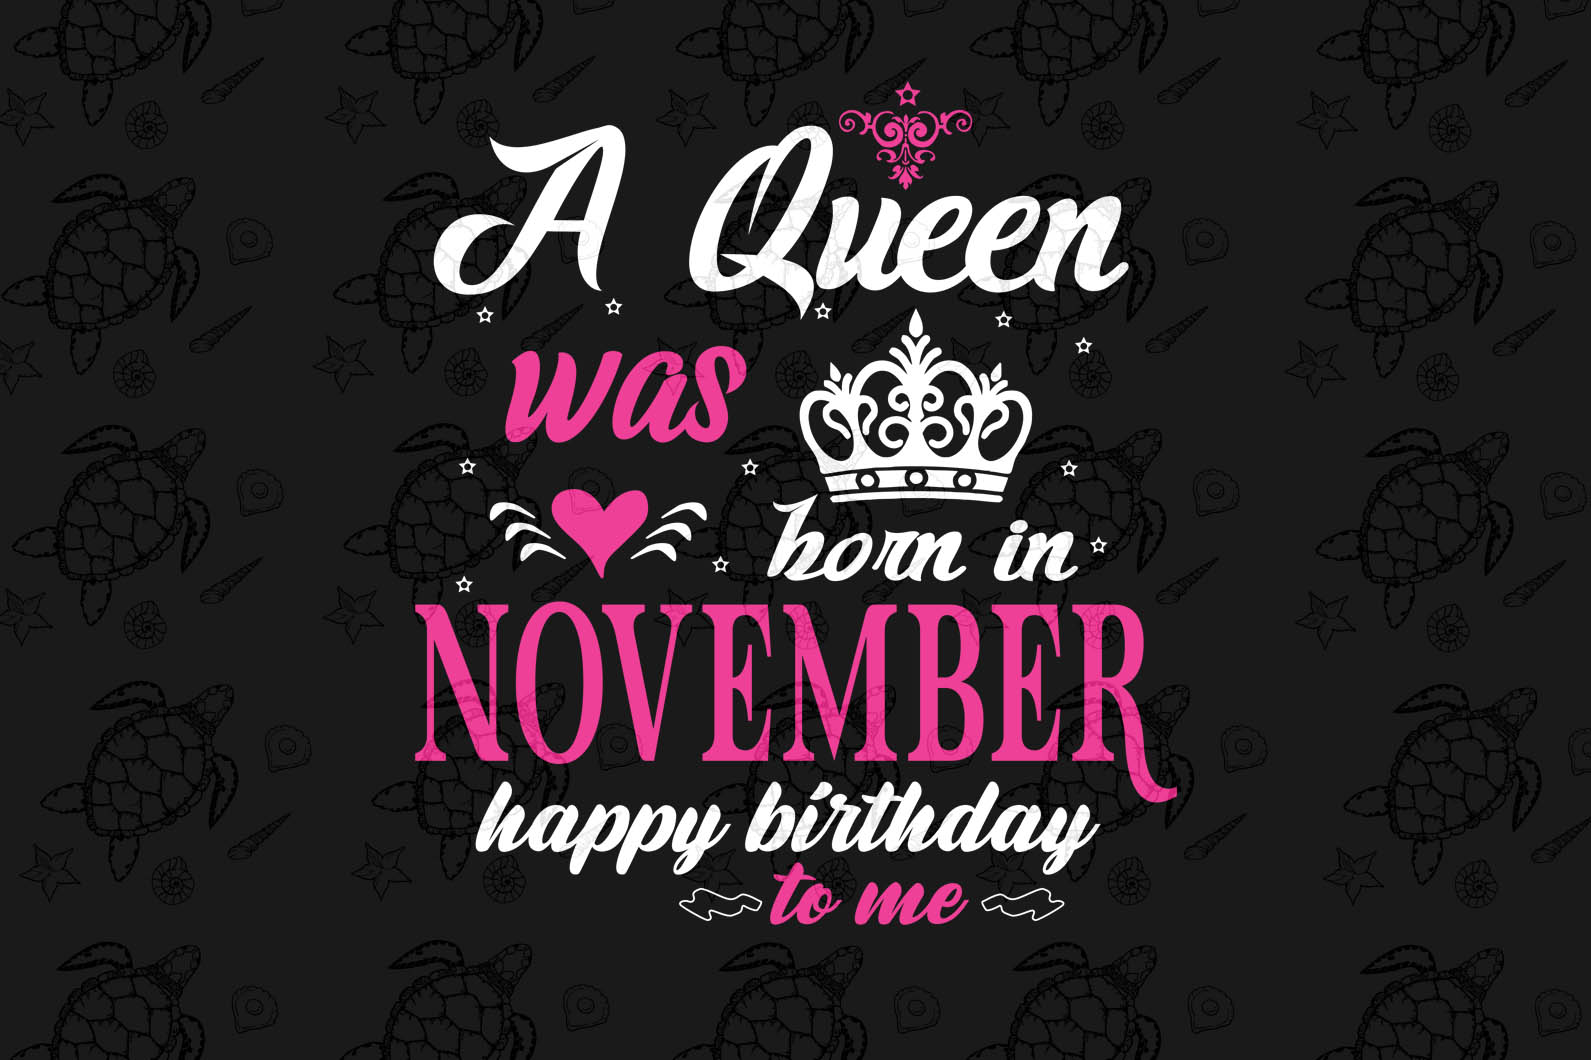 A queen was born in November, retro vintage shirt, born in November, November svg, November birthday, November birthday gift, birthday shirt, queen svg, girl gift, girl shirt, svg cut files, svg clipart, silhouette svg, cricut svg files, decal and vinyl,